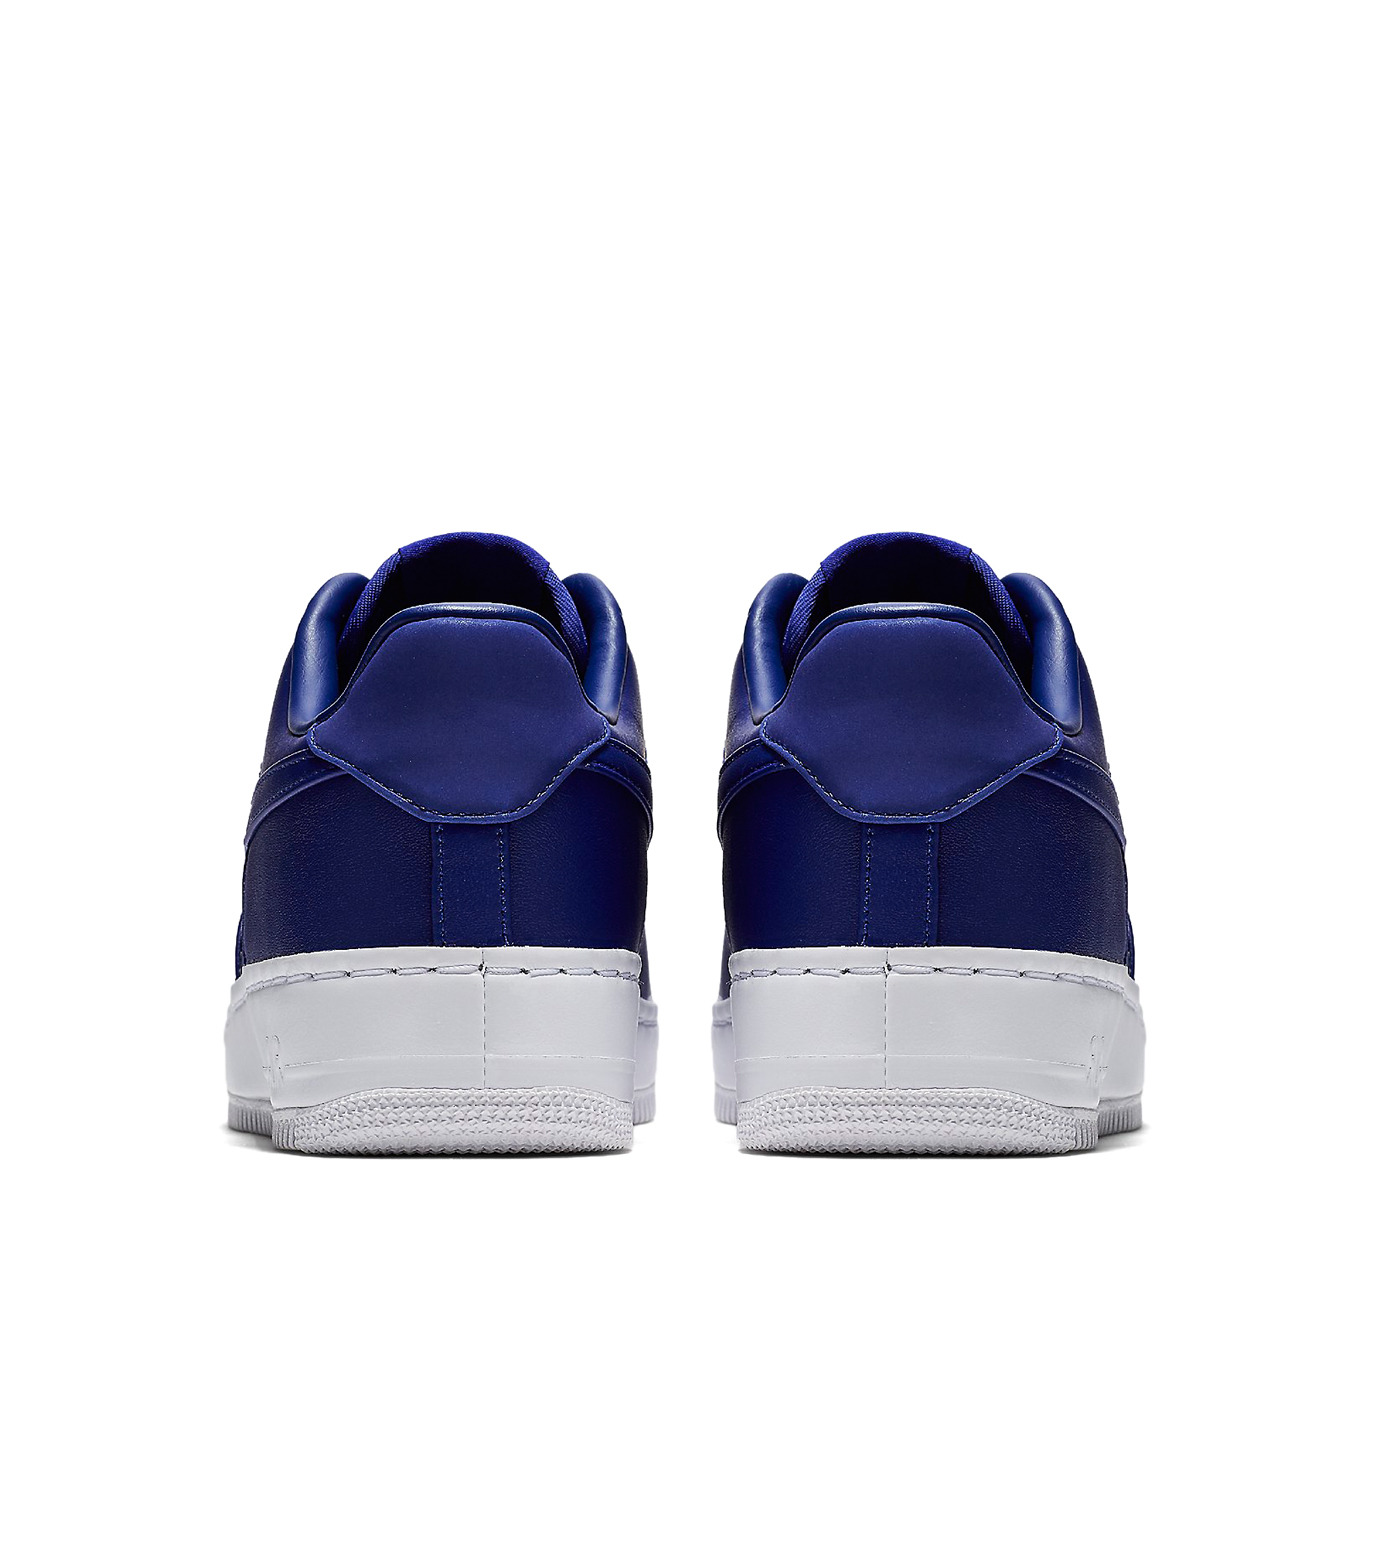 NIKE(ナイキ)のAIR FORCE 1 LOW-BLUE(シューズ/shoes)-555106-402-92 拡大詳細画像5